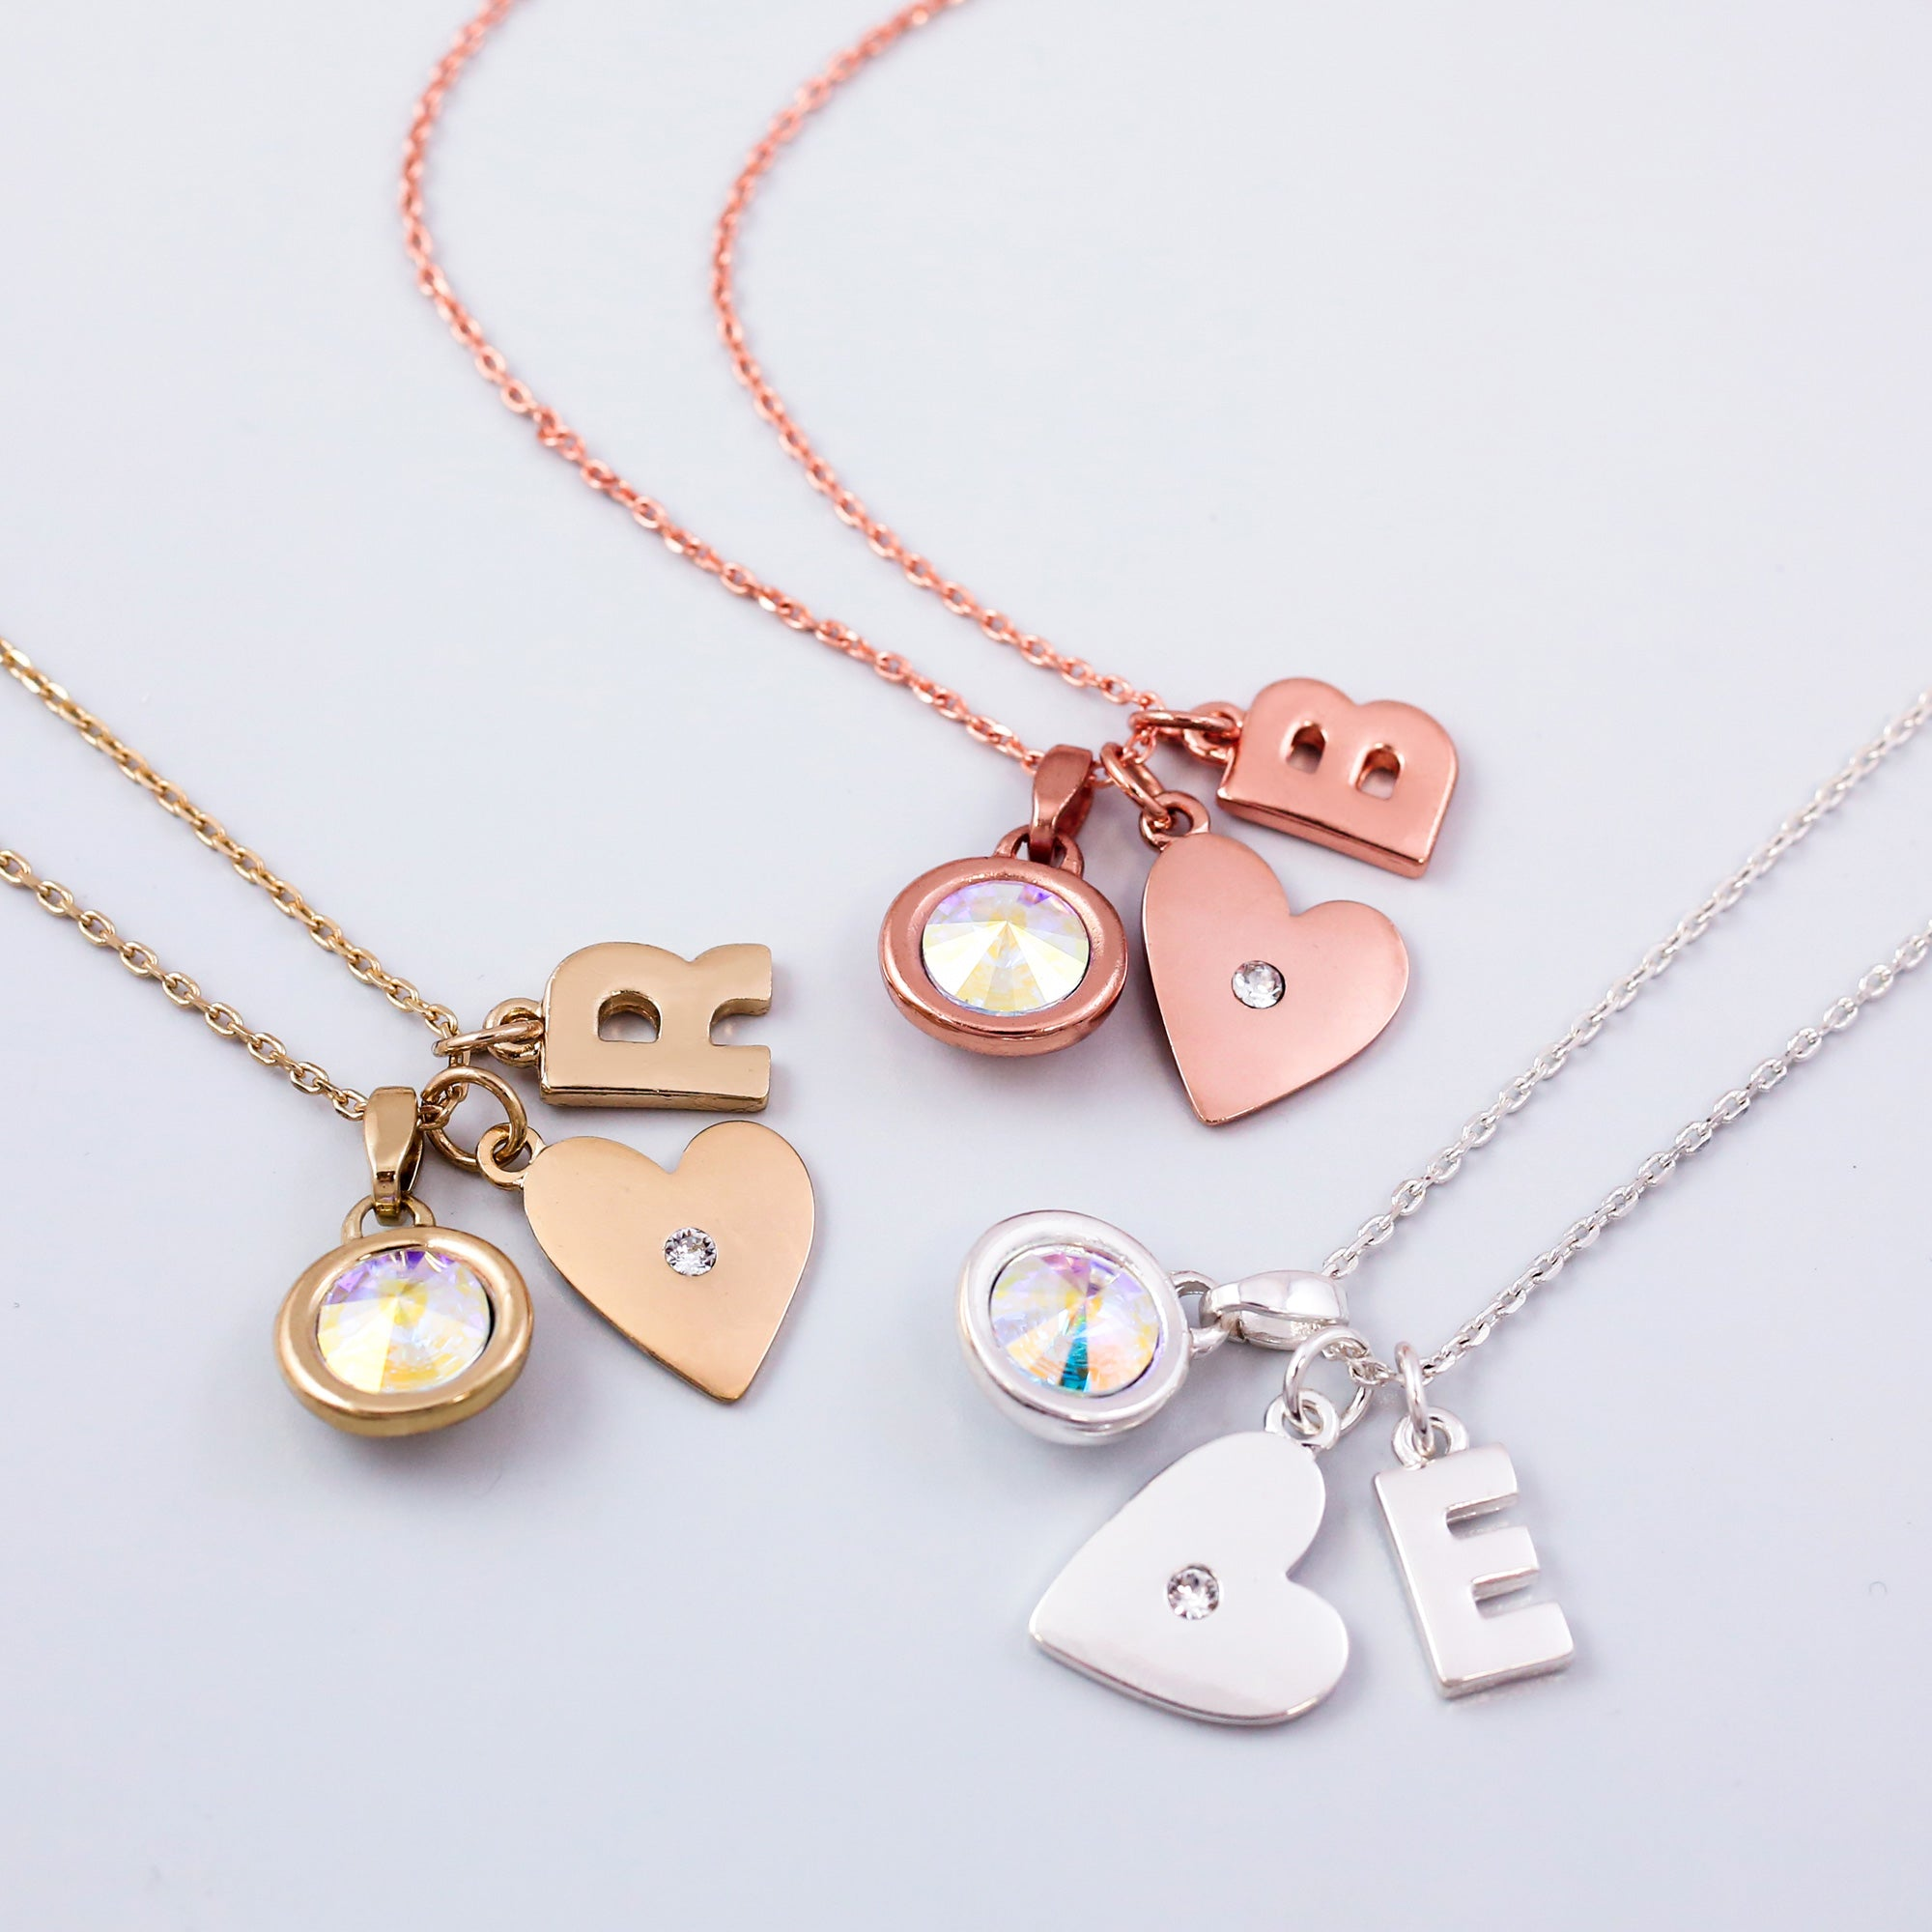 Heart Charm Necklace Made with Crystals from Swarovski ®